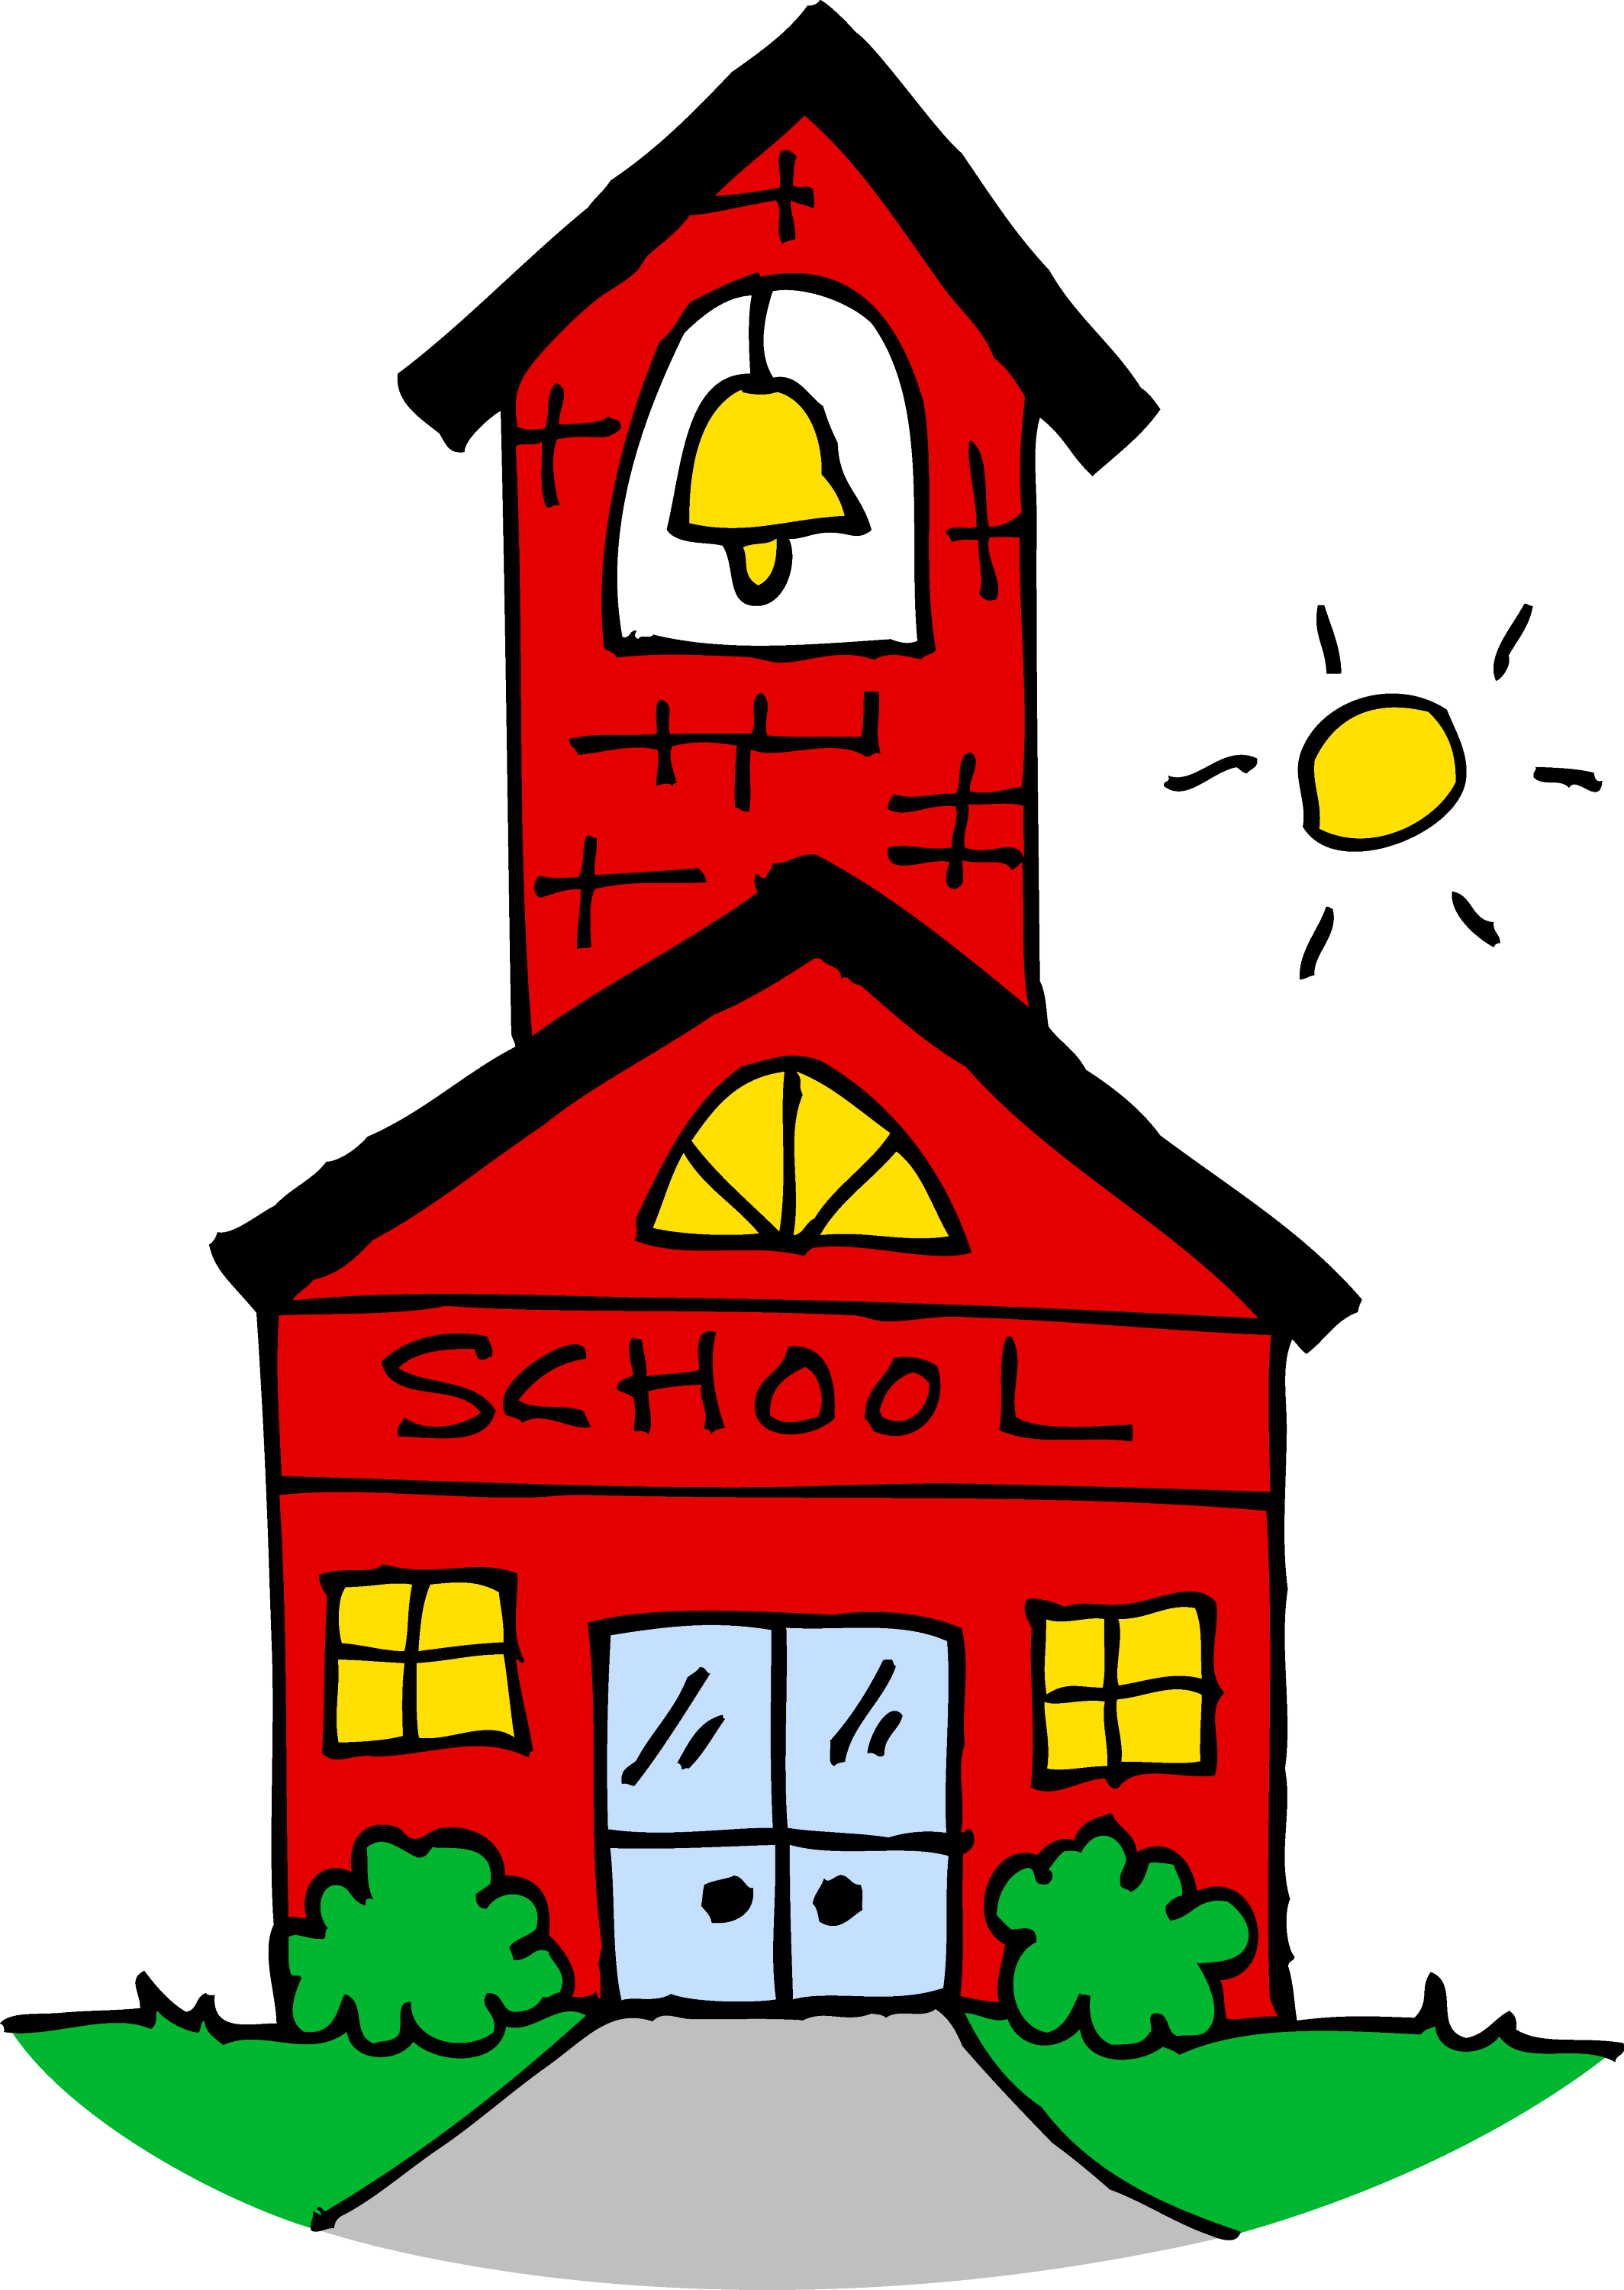 cute school house clipart free clip art rh sweetclipart com cute school clip art free cute school clip art free